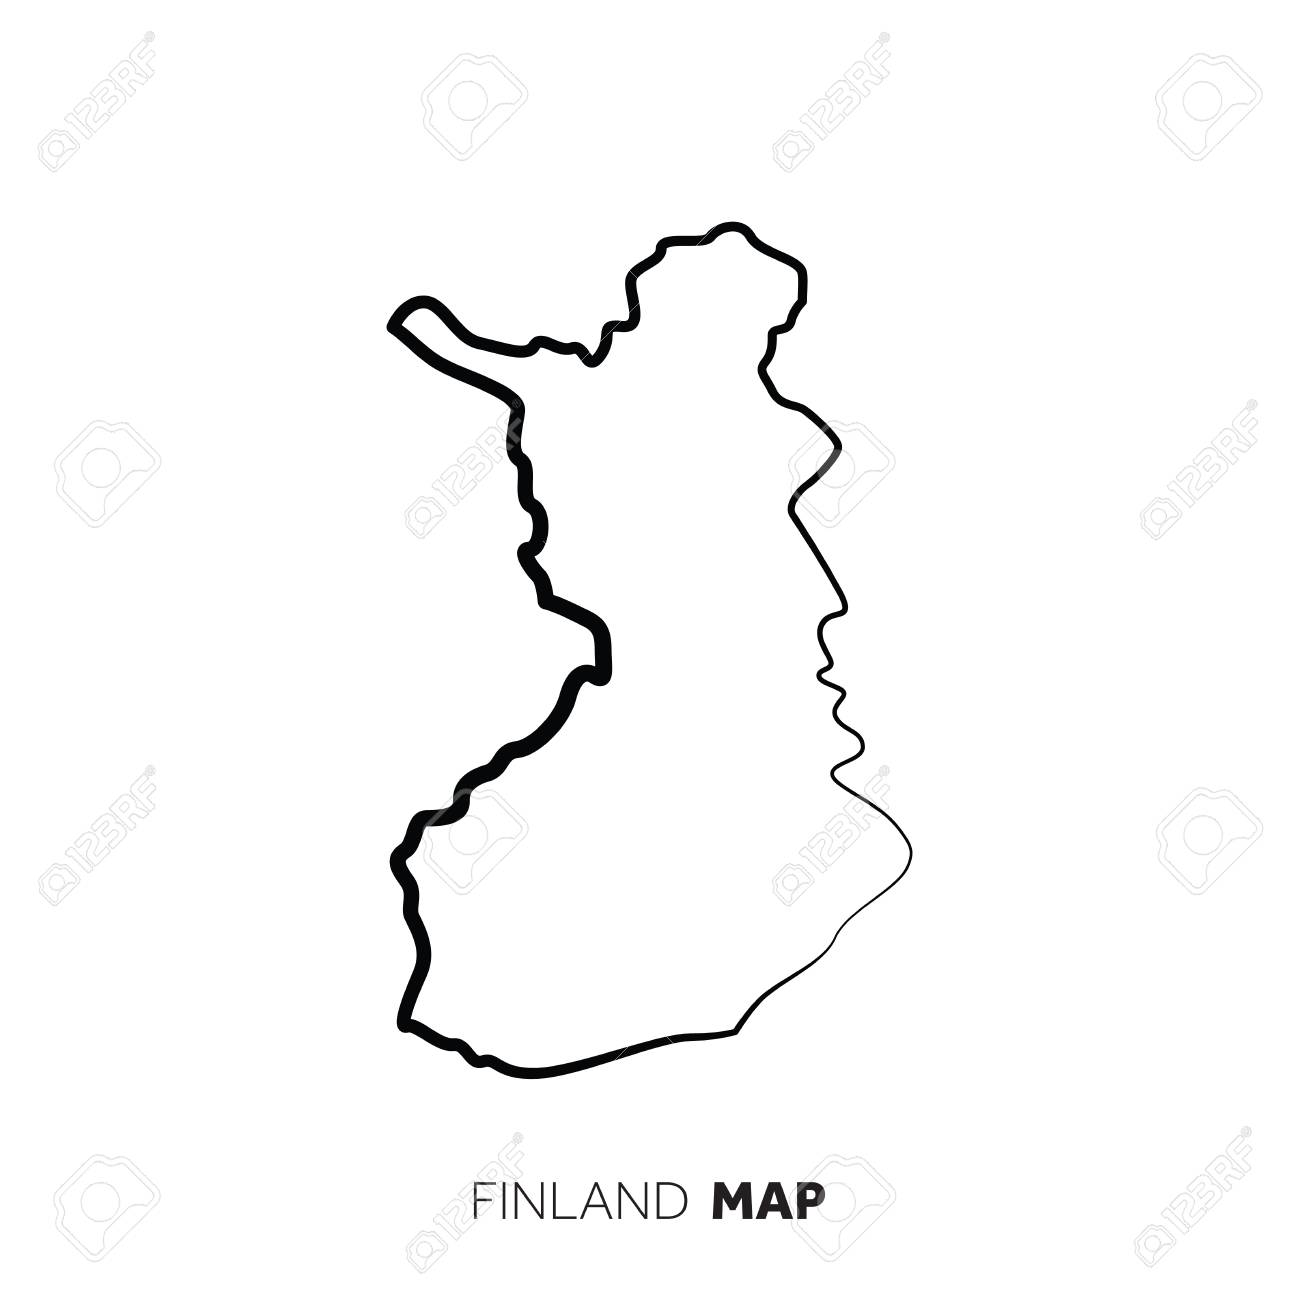 Finland vector country map outline. Black line on white background